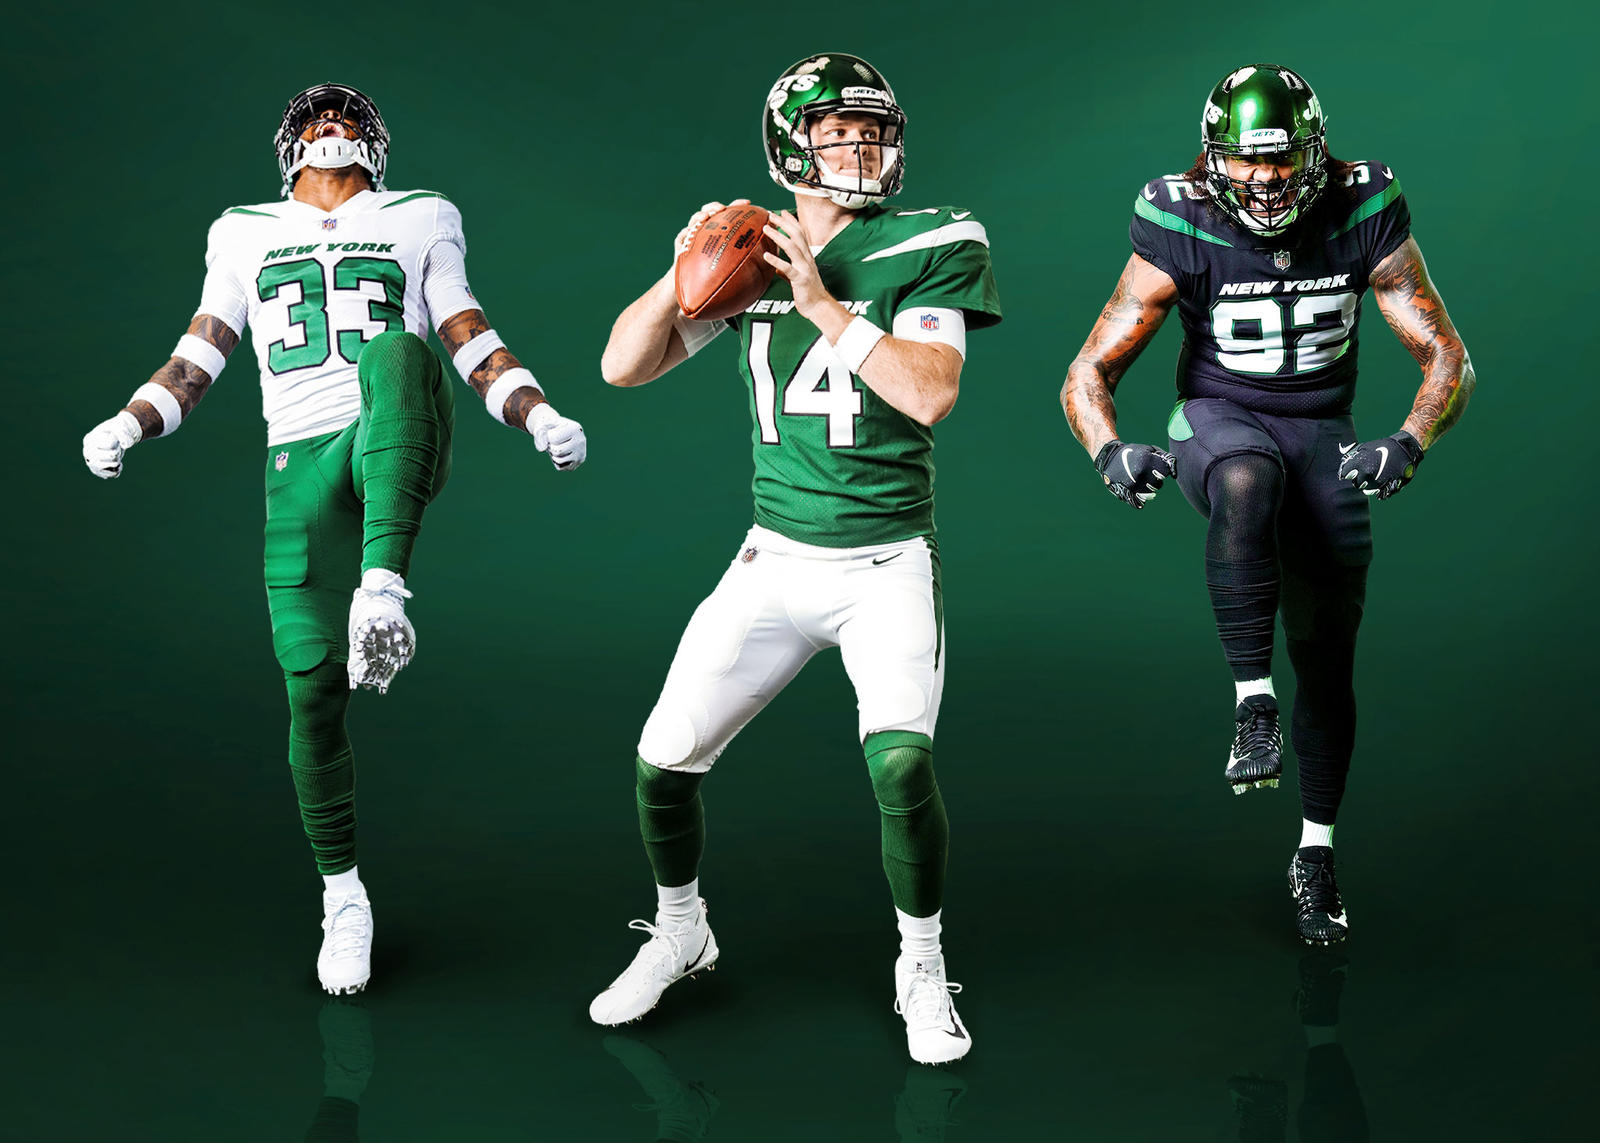 New York Jets Uniforms 2019 20 Instagram Square Hero